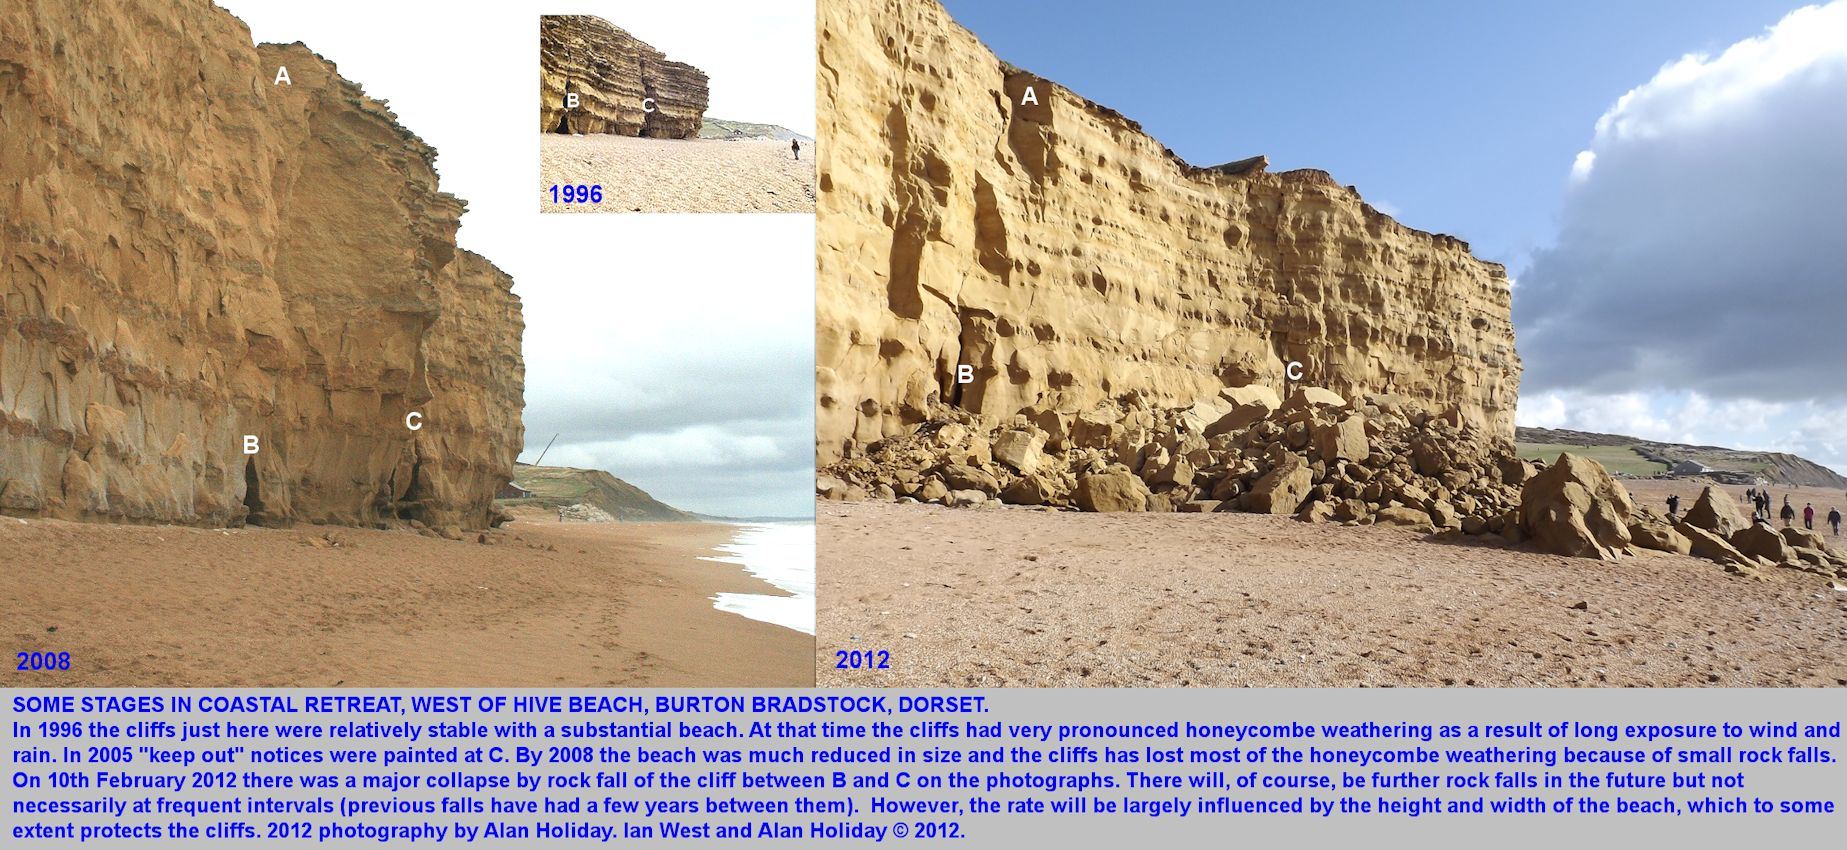 Changes in the cliff west of Hive Beach, Burton Bradstock, Dorset, as a result of rock fall